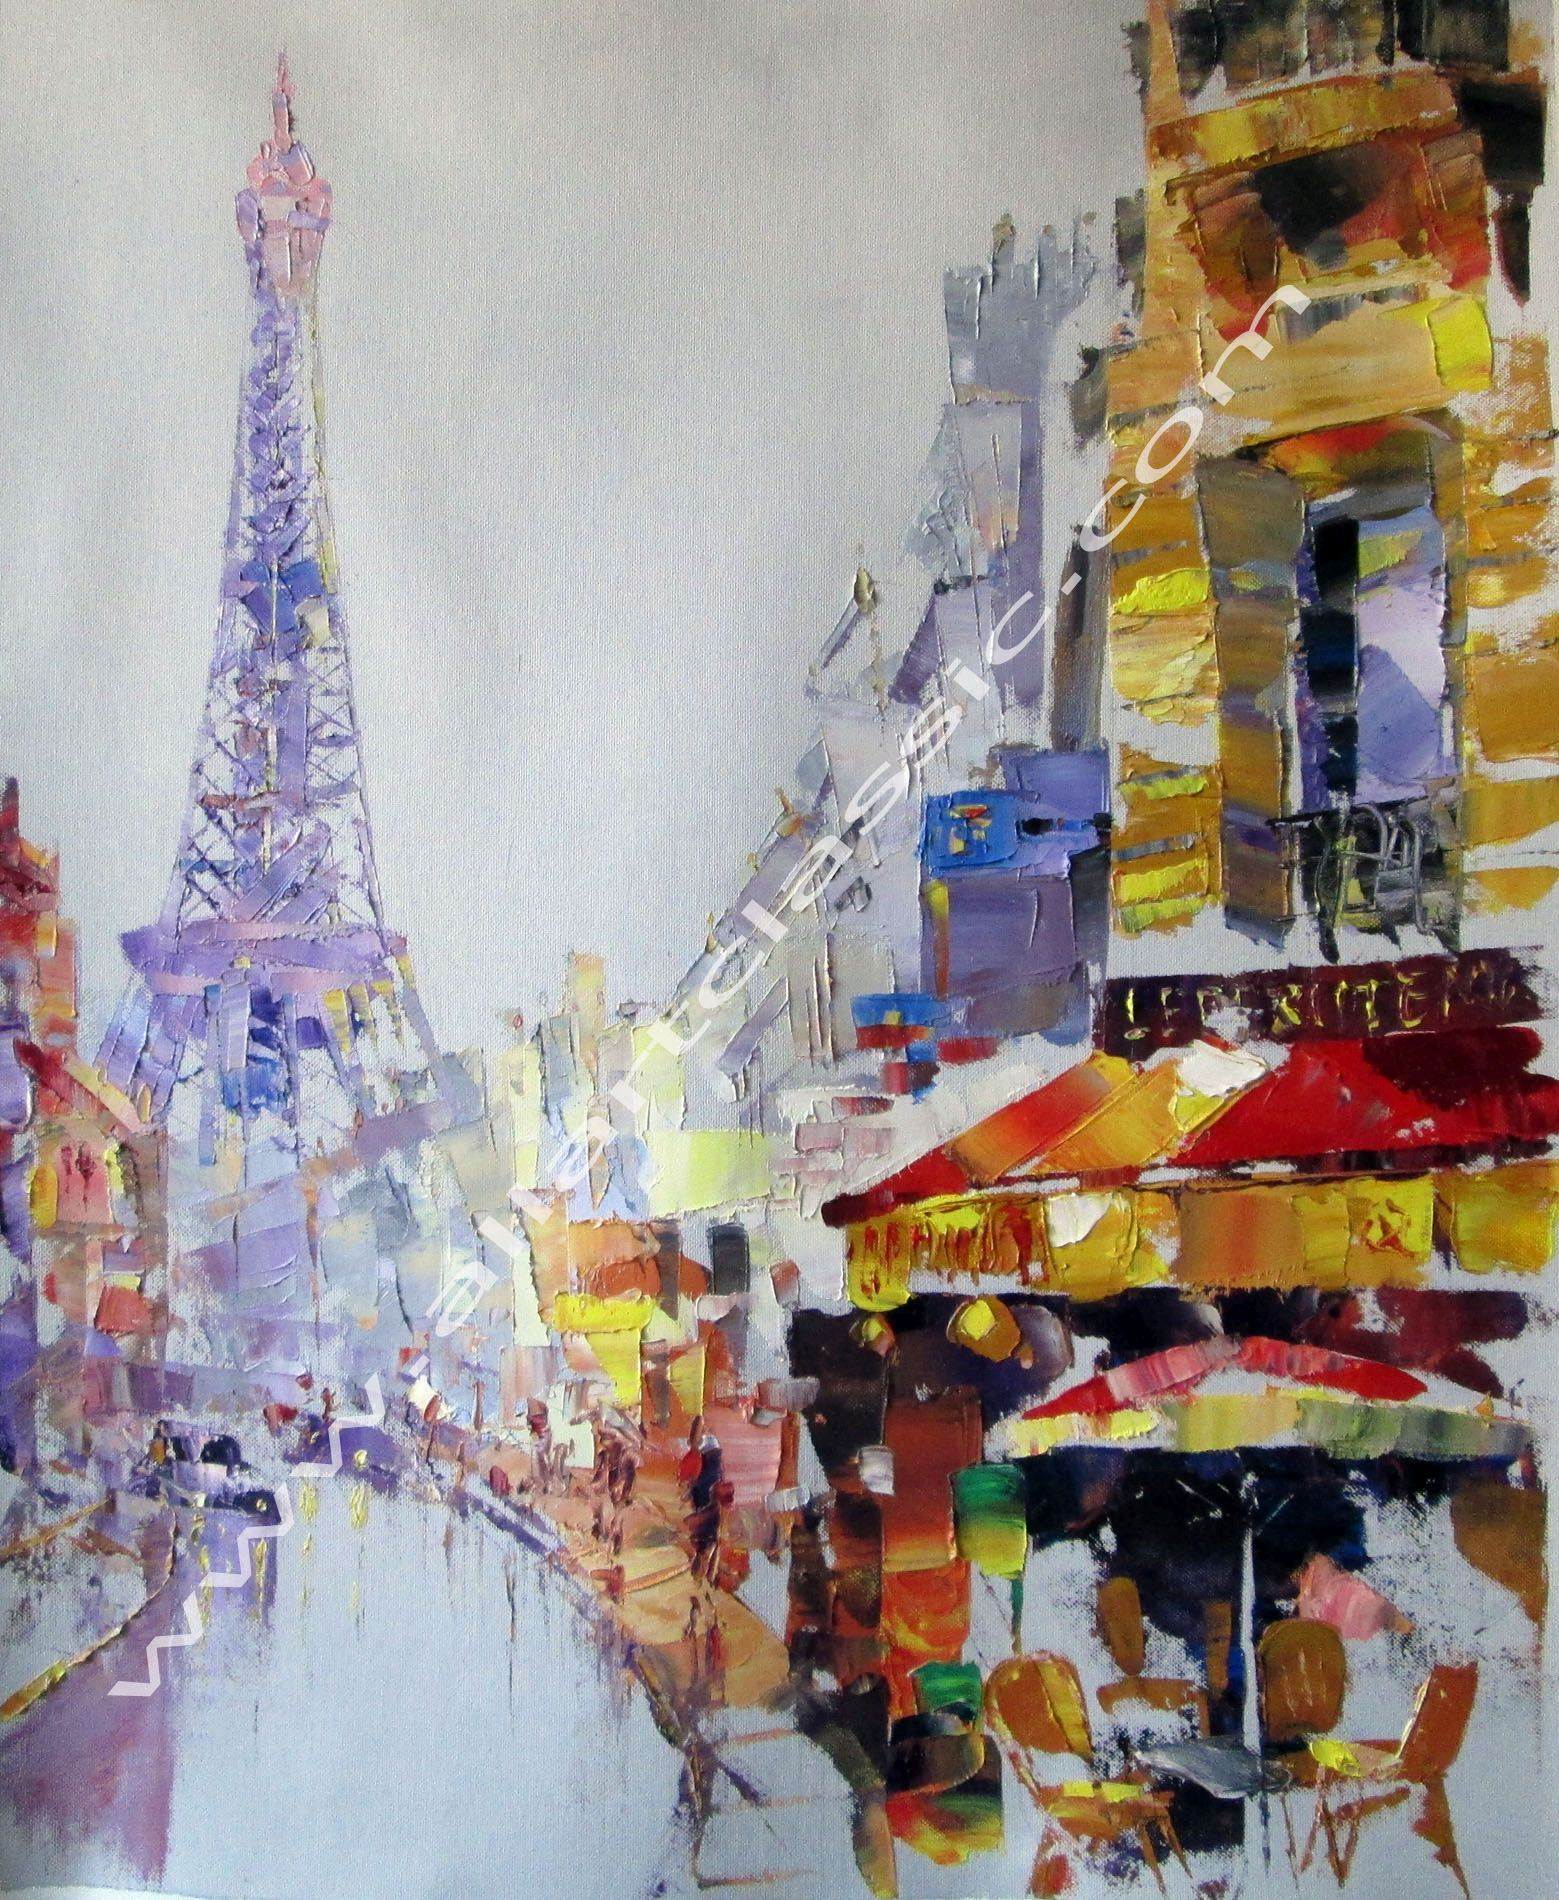 Original Painting - Paris, Eiffel Tower, Palette Knife Painting